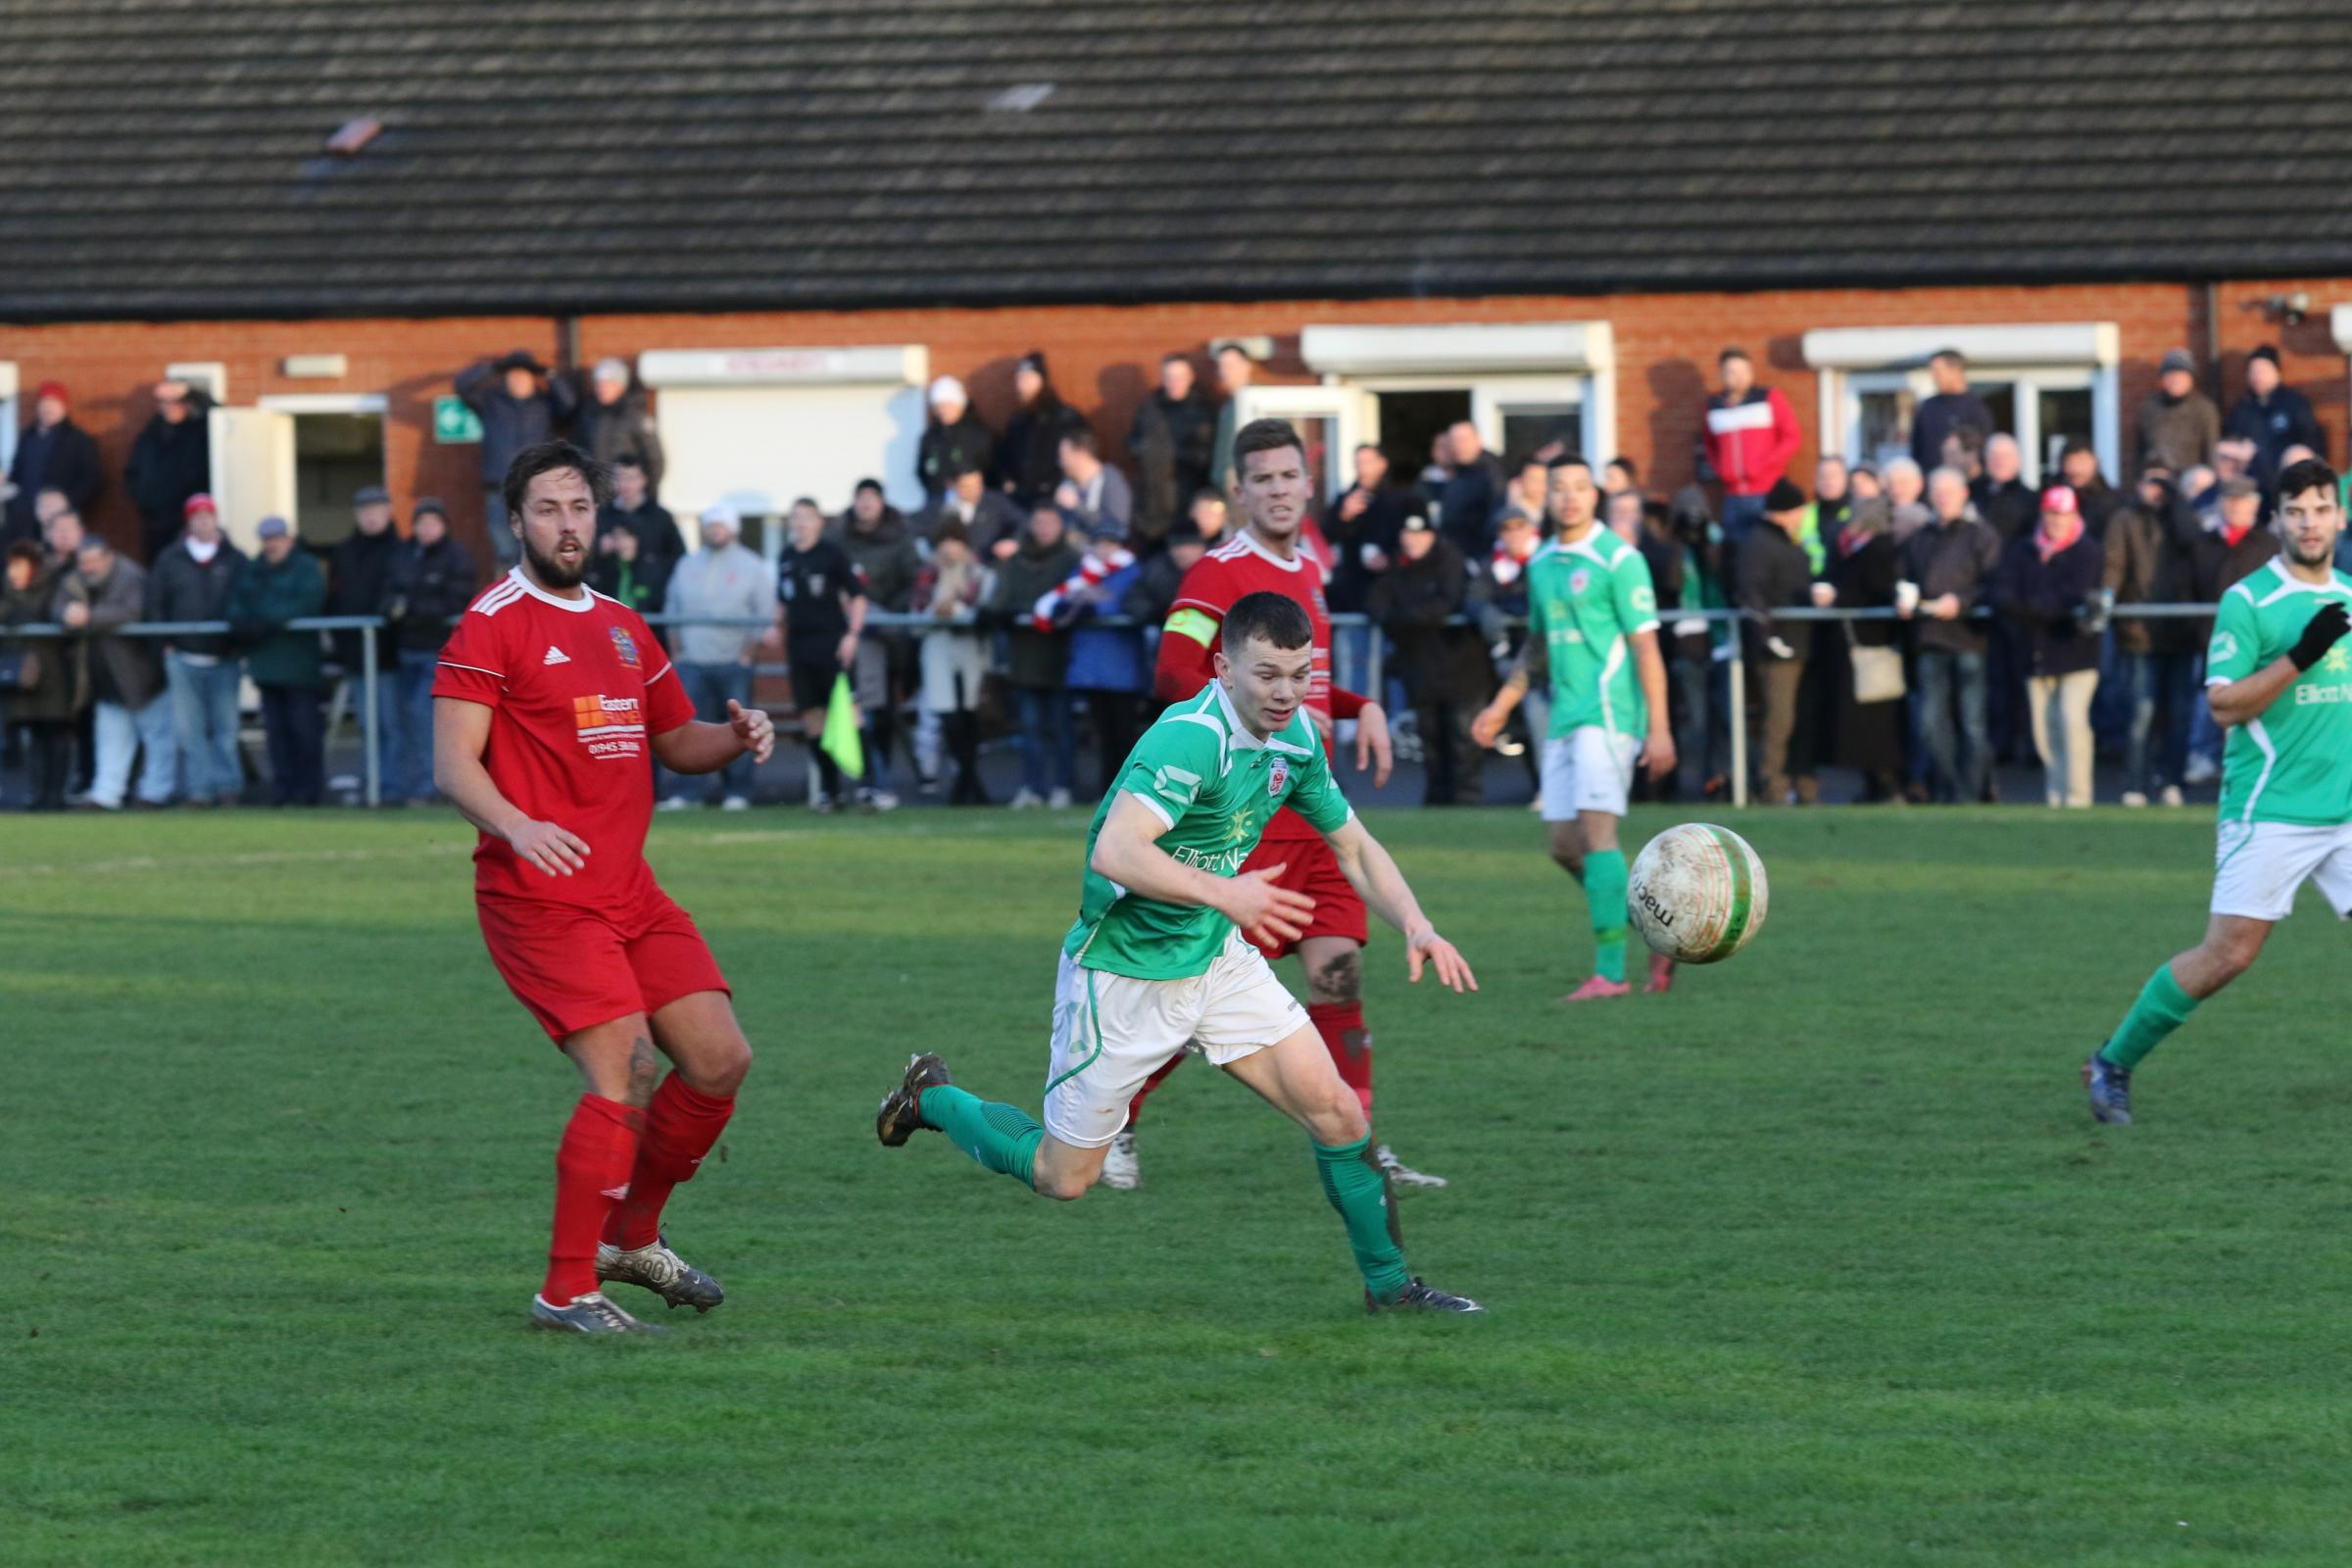 Jason Cowley battles for the ball against Wisbech. Photo by David Besley.